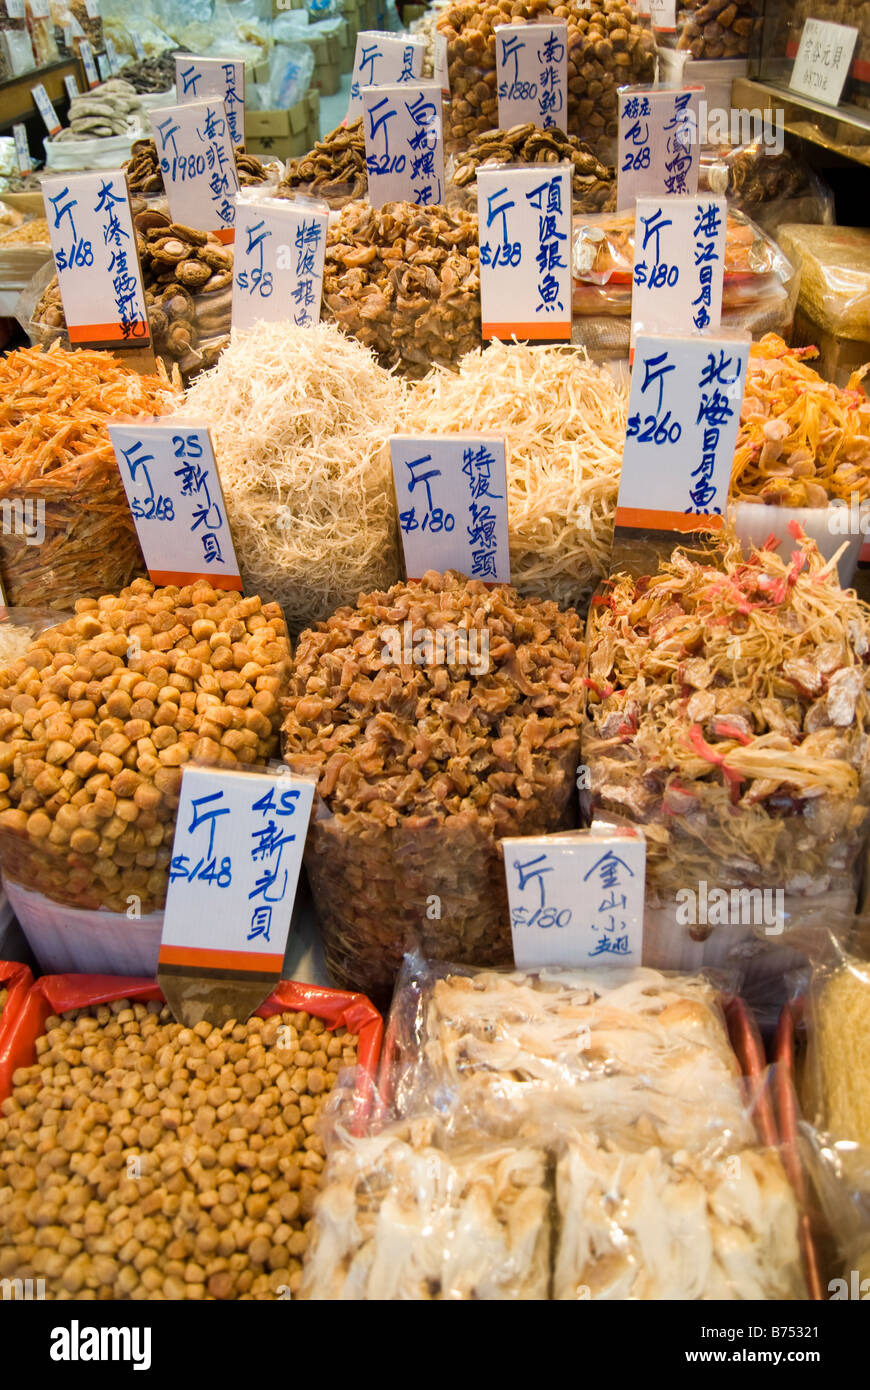 Pesce essiccato display, Des Voeux Road West, Sai Ying Pun, Victoria Harbour, Isola di Hong Kong, Hong Kong, Cina Immagini Stock